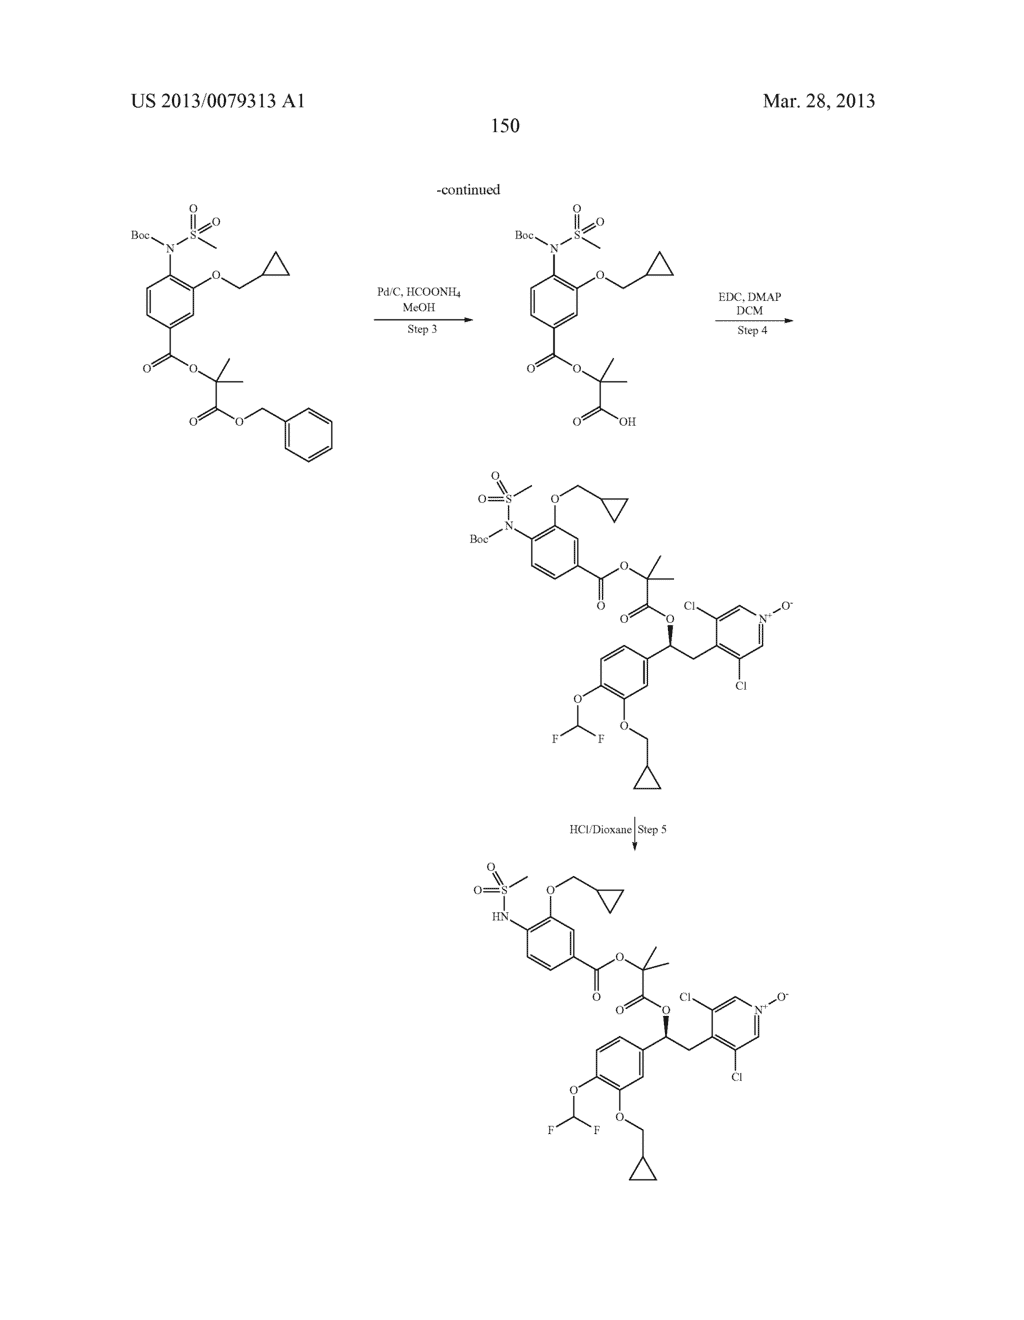 DERIVATIVES OF 1-PHENYL-2-PYRIDINYL ALKYL ALCOHOLS AS PHOSPHODIESTERASE     INHIBITORS - diagram, schematic, and image 151